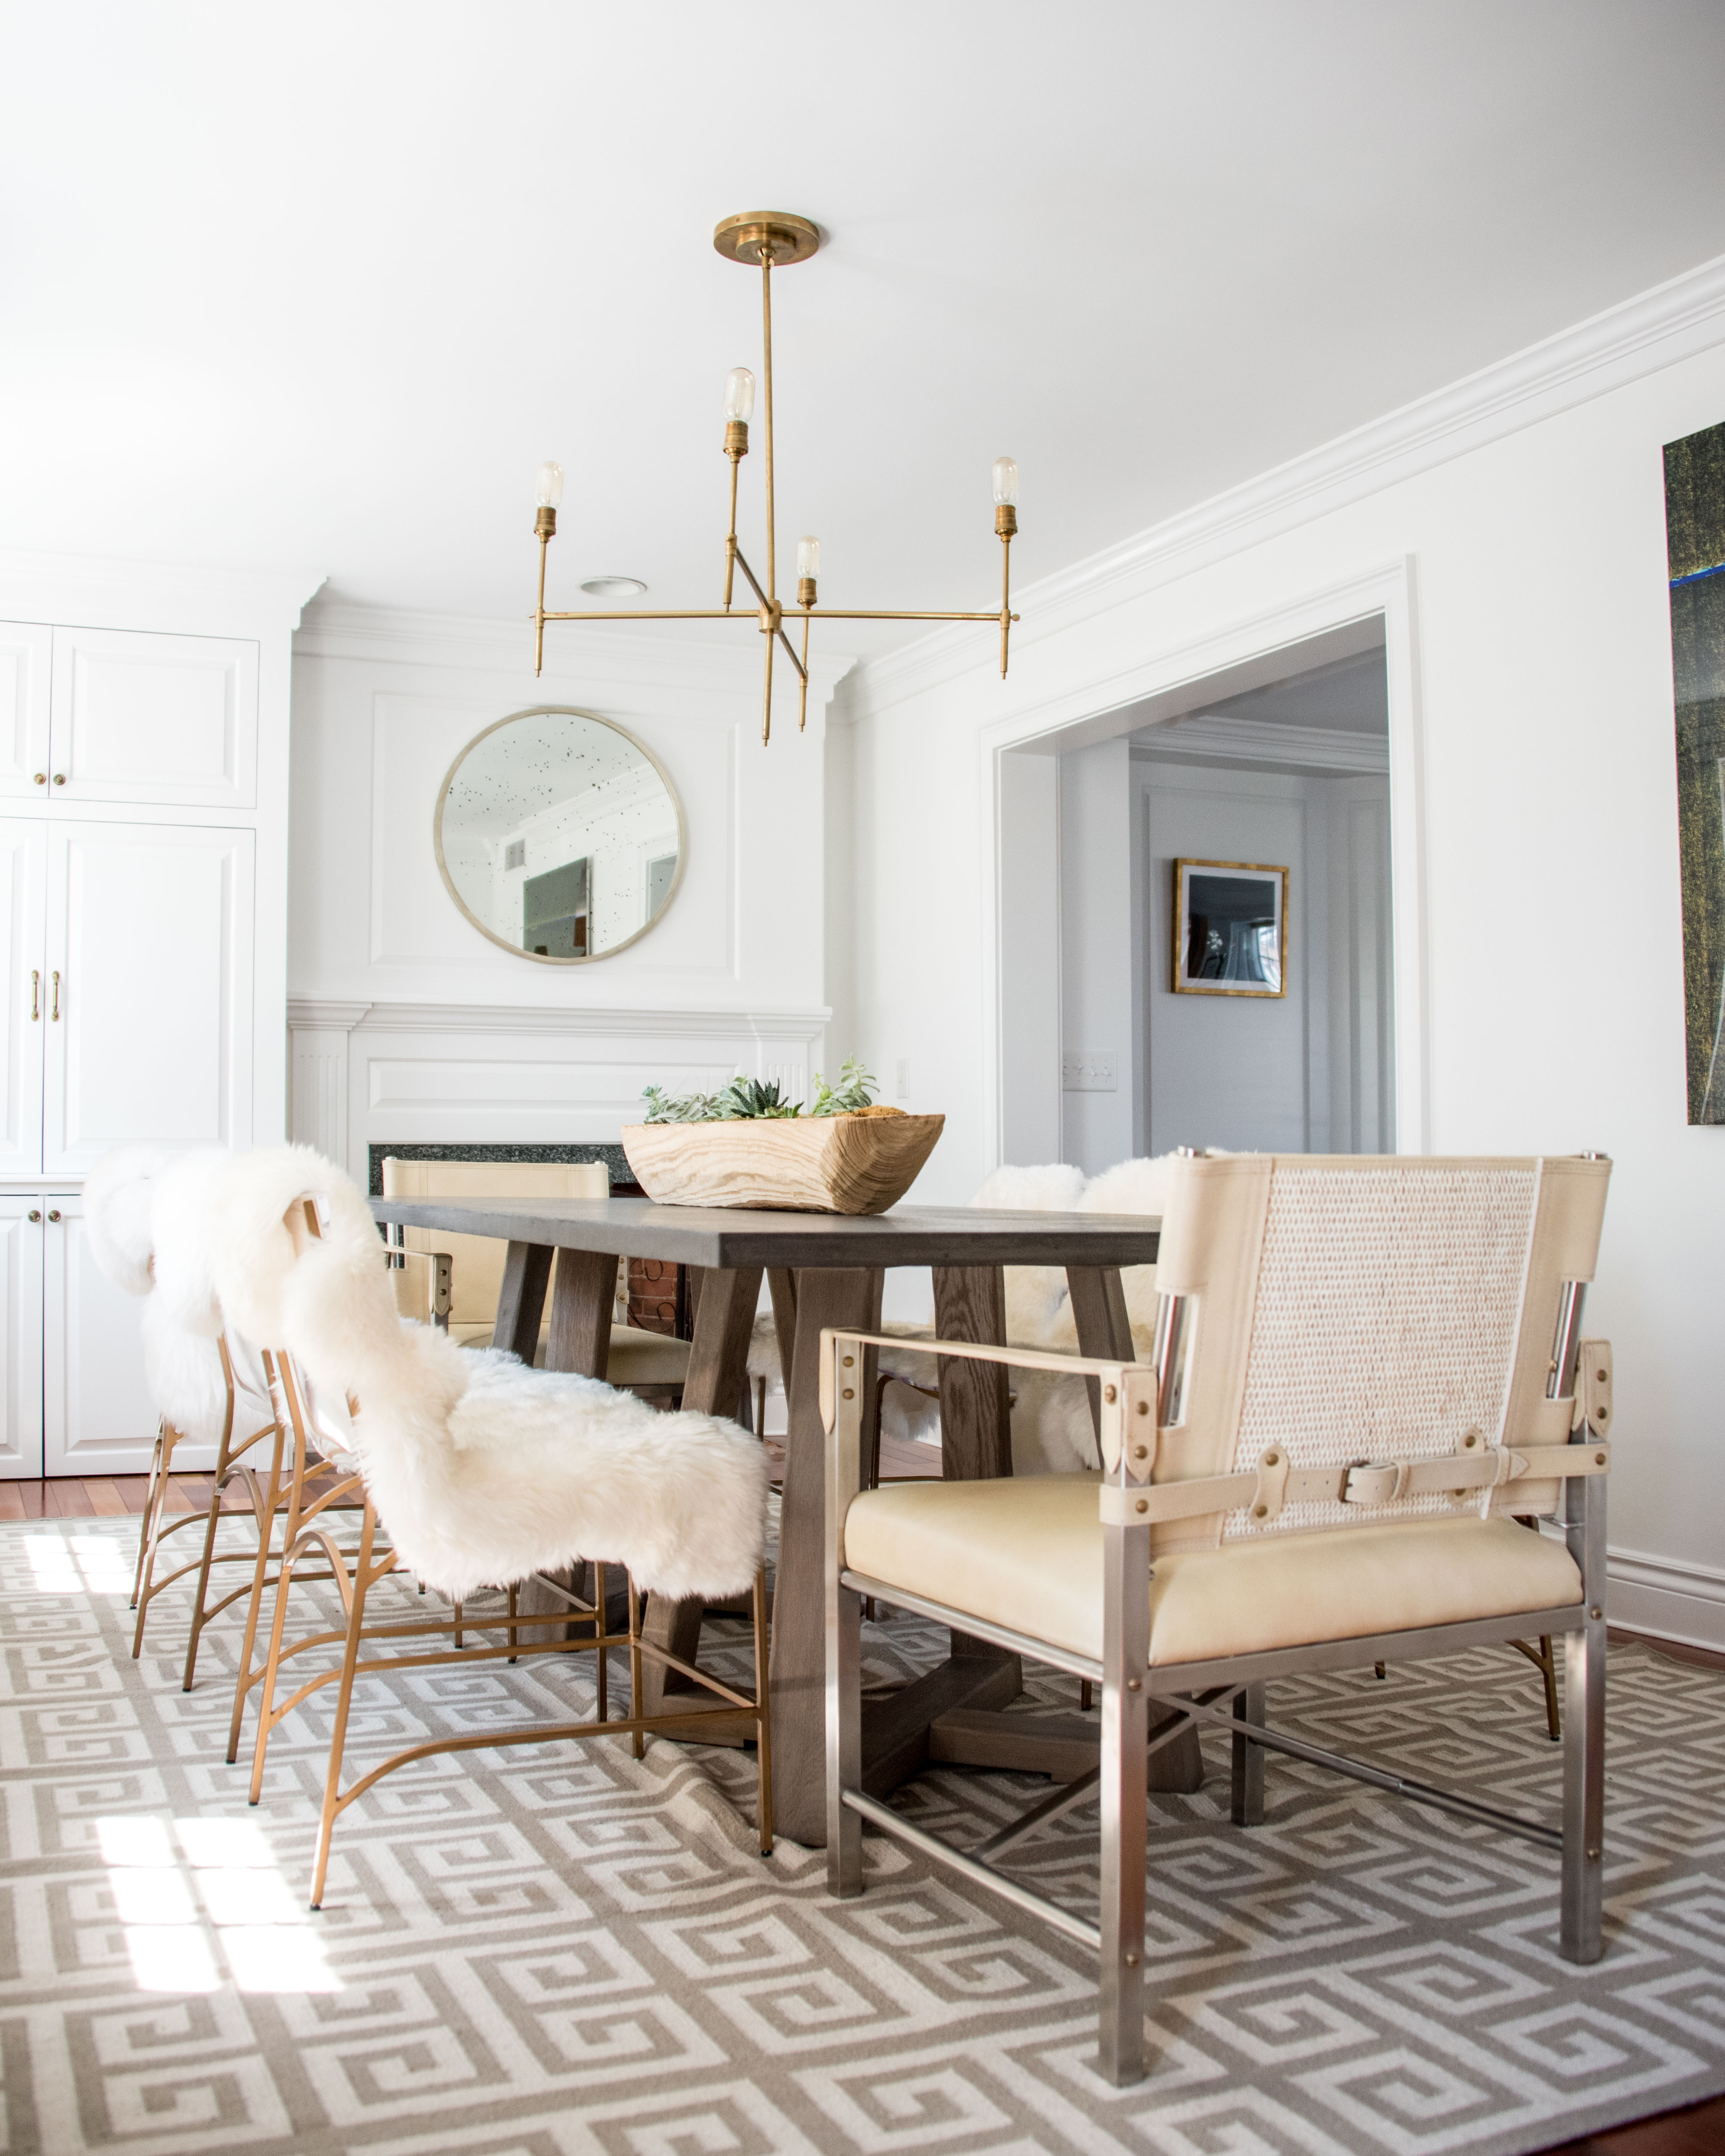 Katie Goodrich Of Ivory + Bone Interiors Provides Sumptuous Seating With  Sheepskin Draped Penelope Dining Chairs. Image Courtesy Of Freebird  Photography.